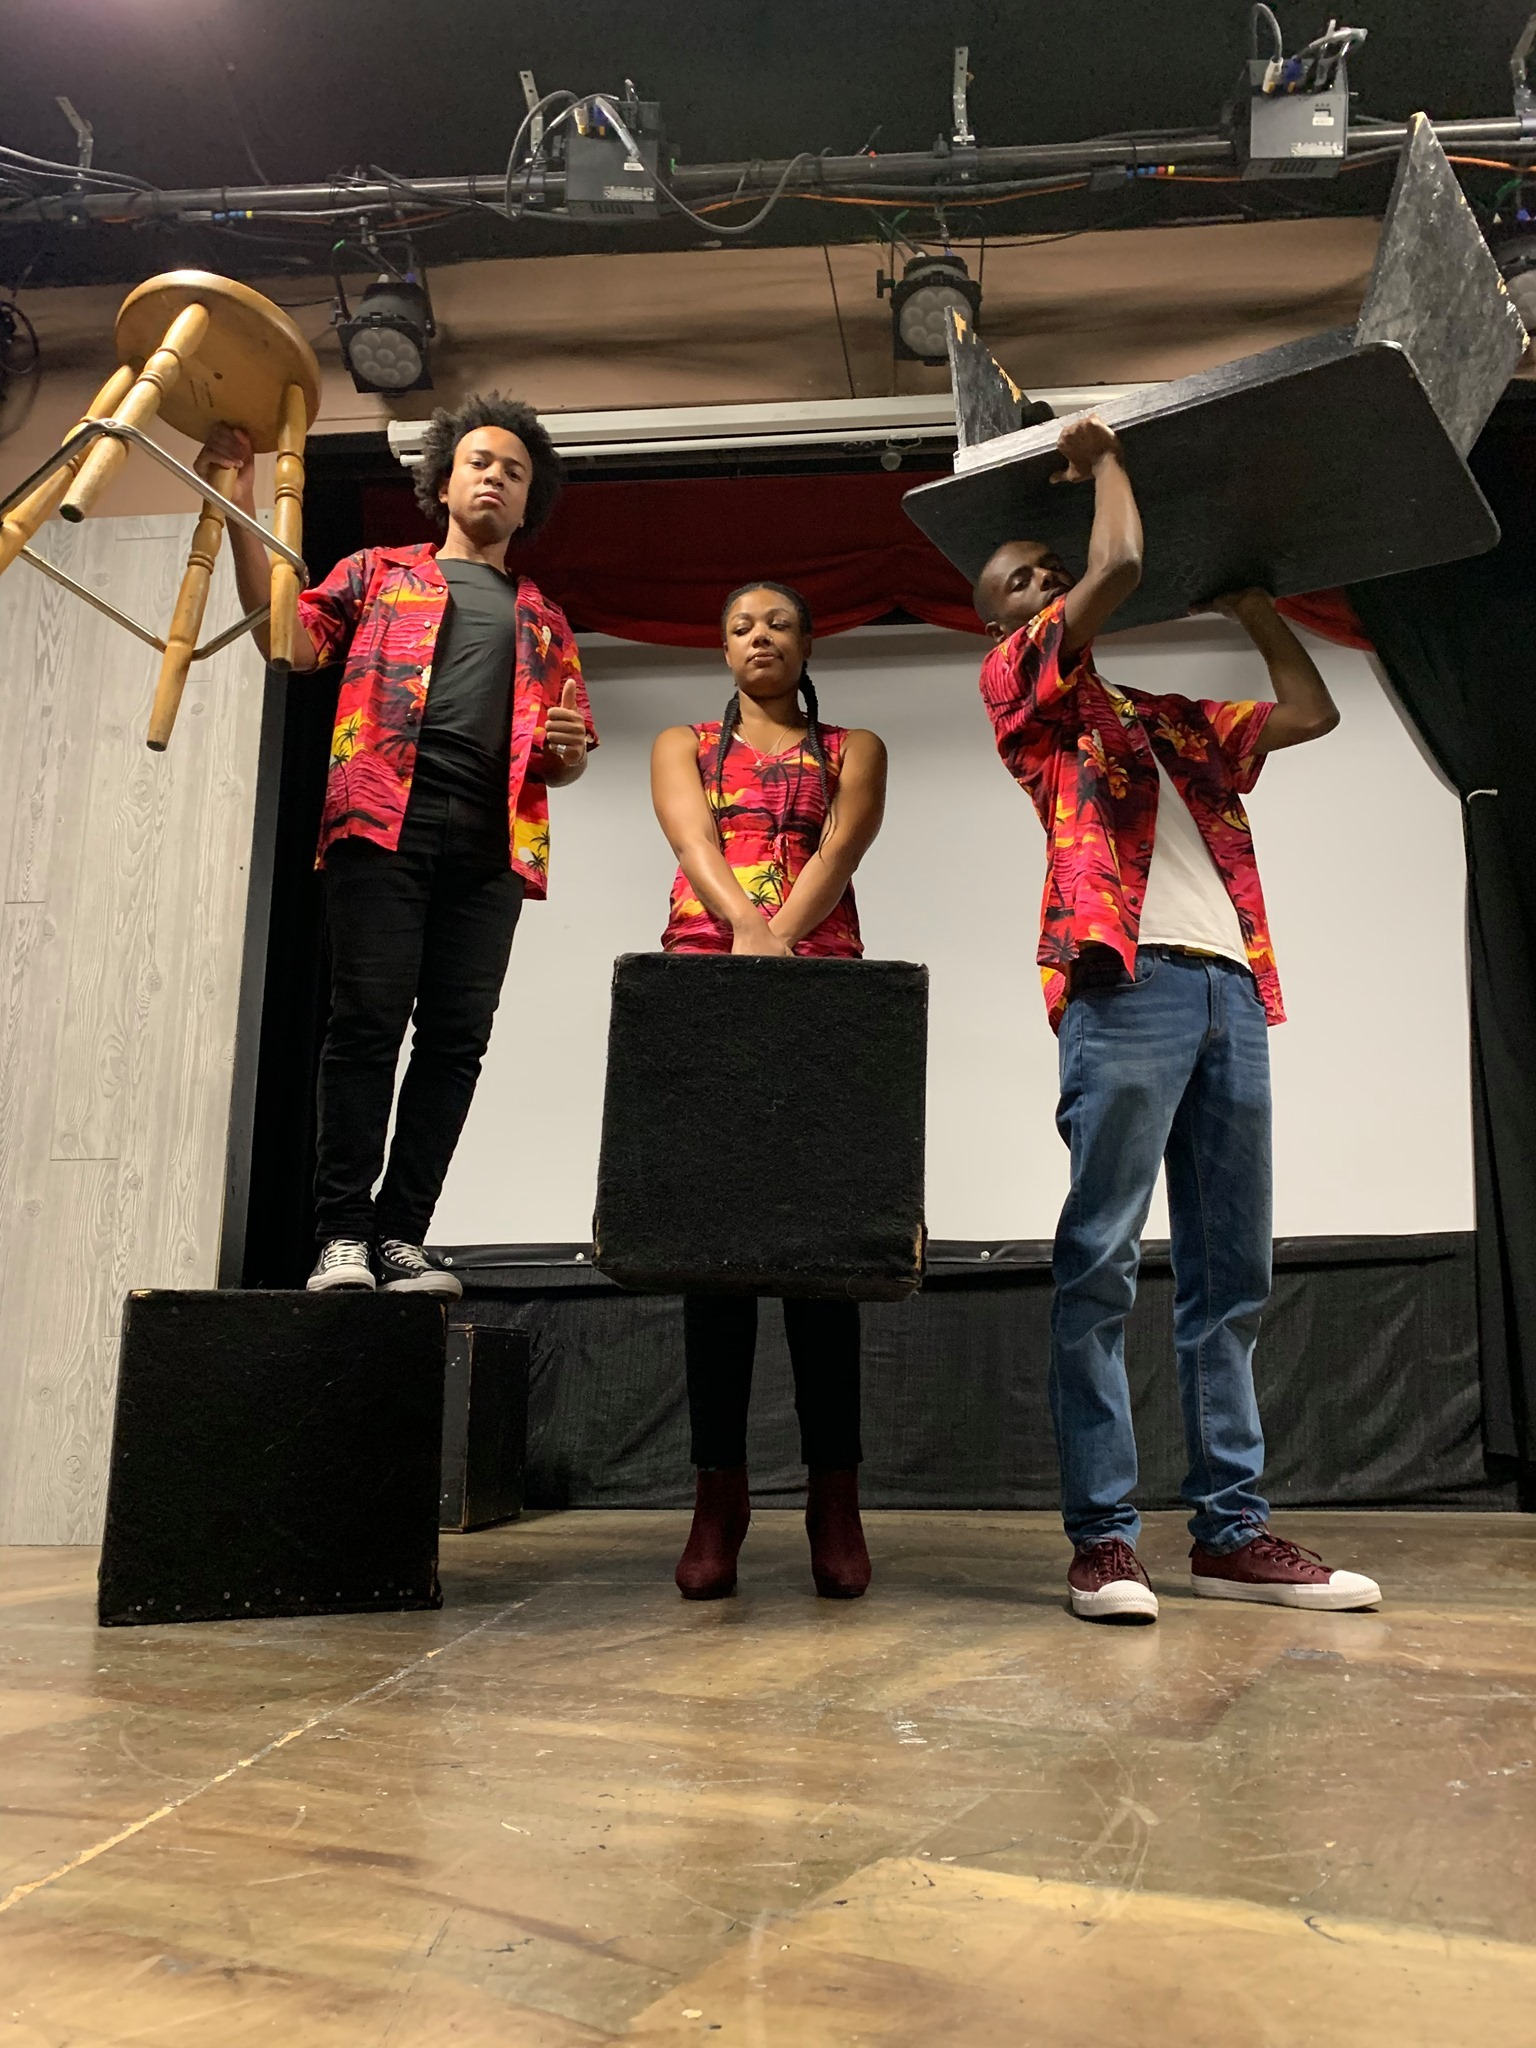 TrIO is the Featured Improv Group at the Premiere of Unexpected Guests Thursday